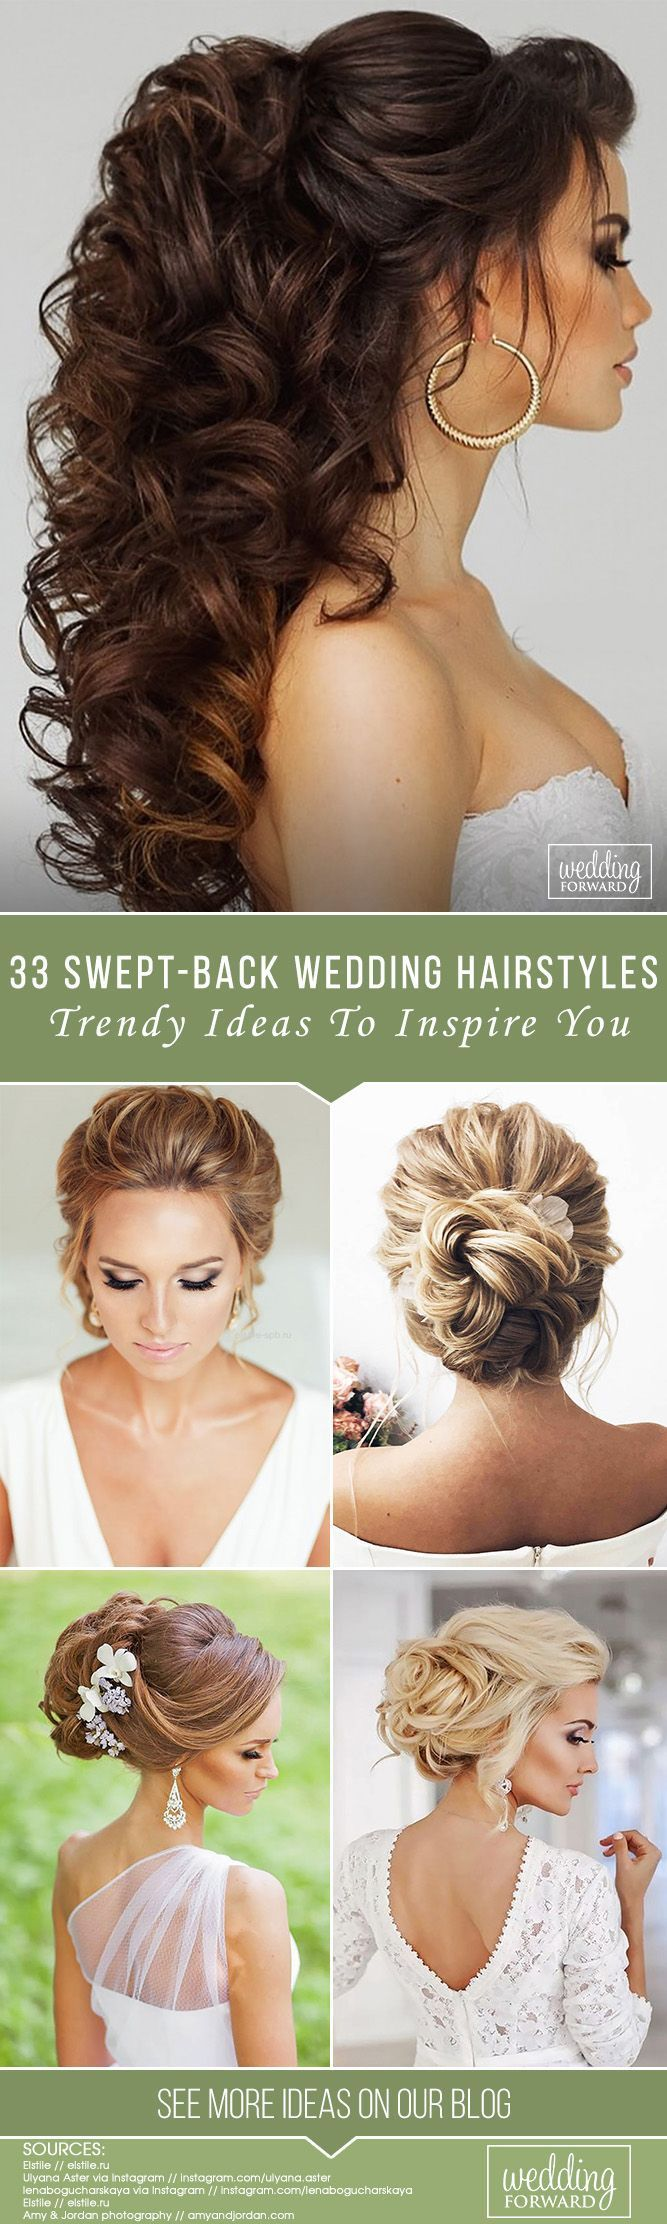 wedding hair styles 36 trendy swept back wedding hairstyles frisuren 6298